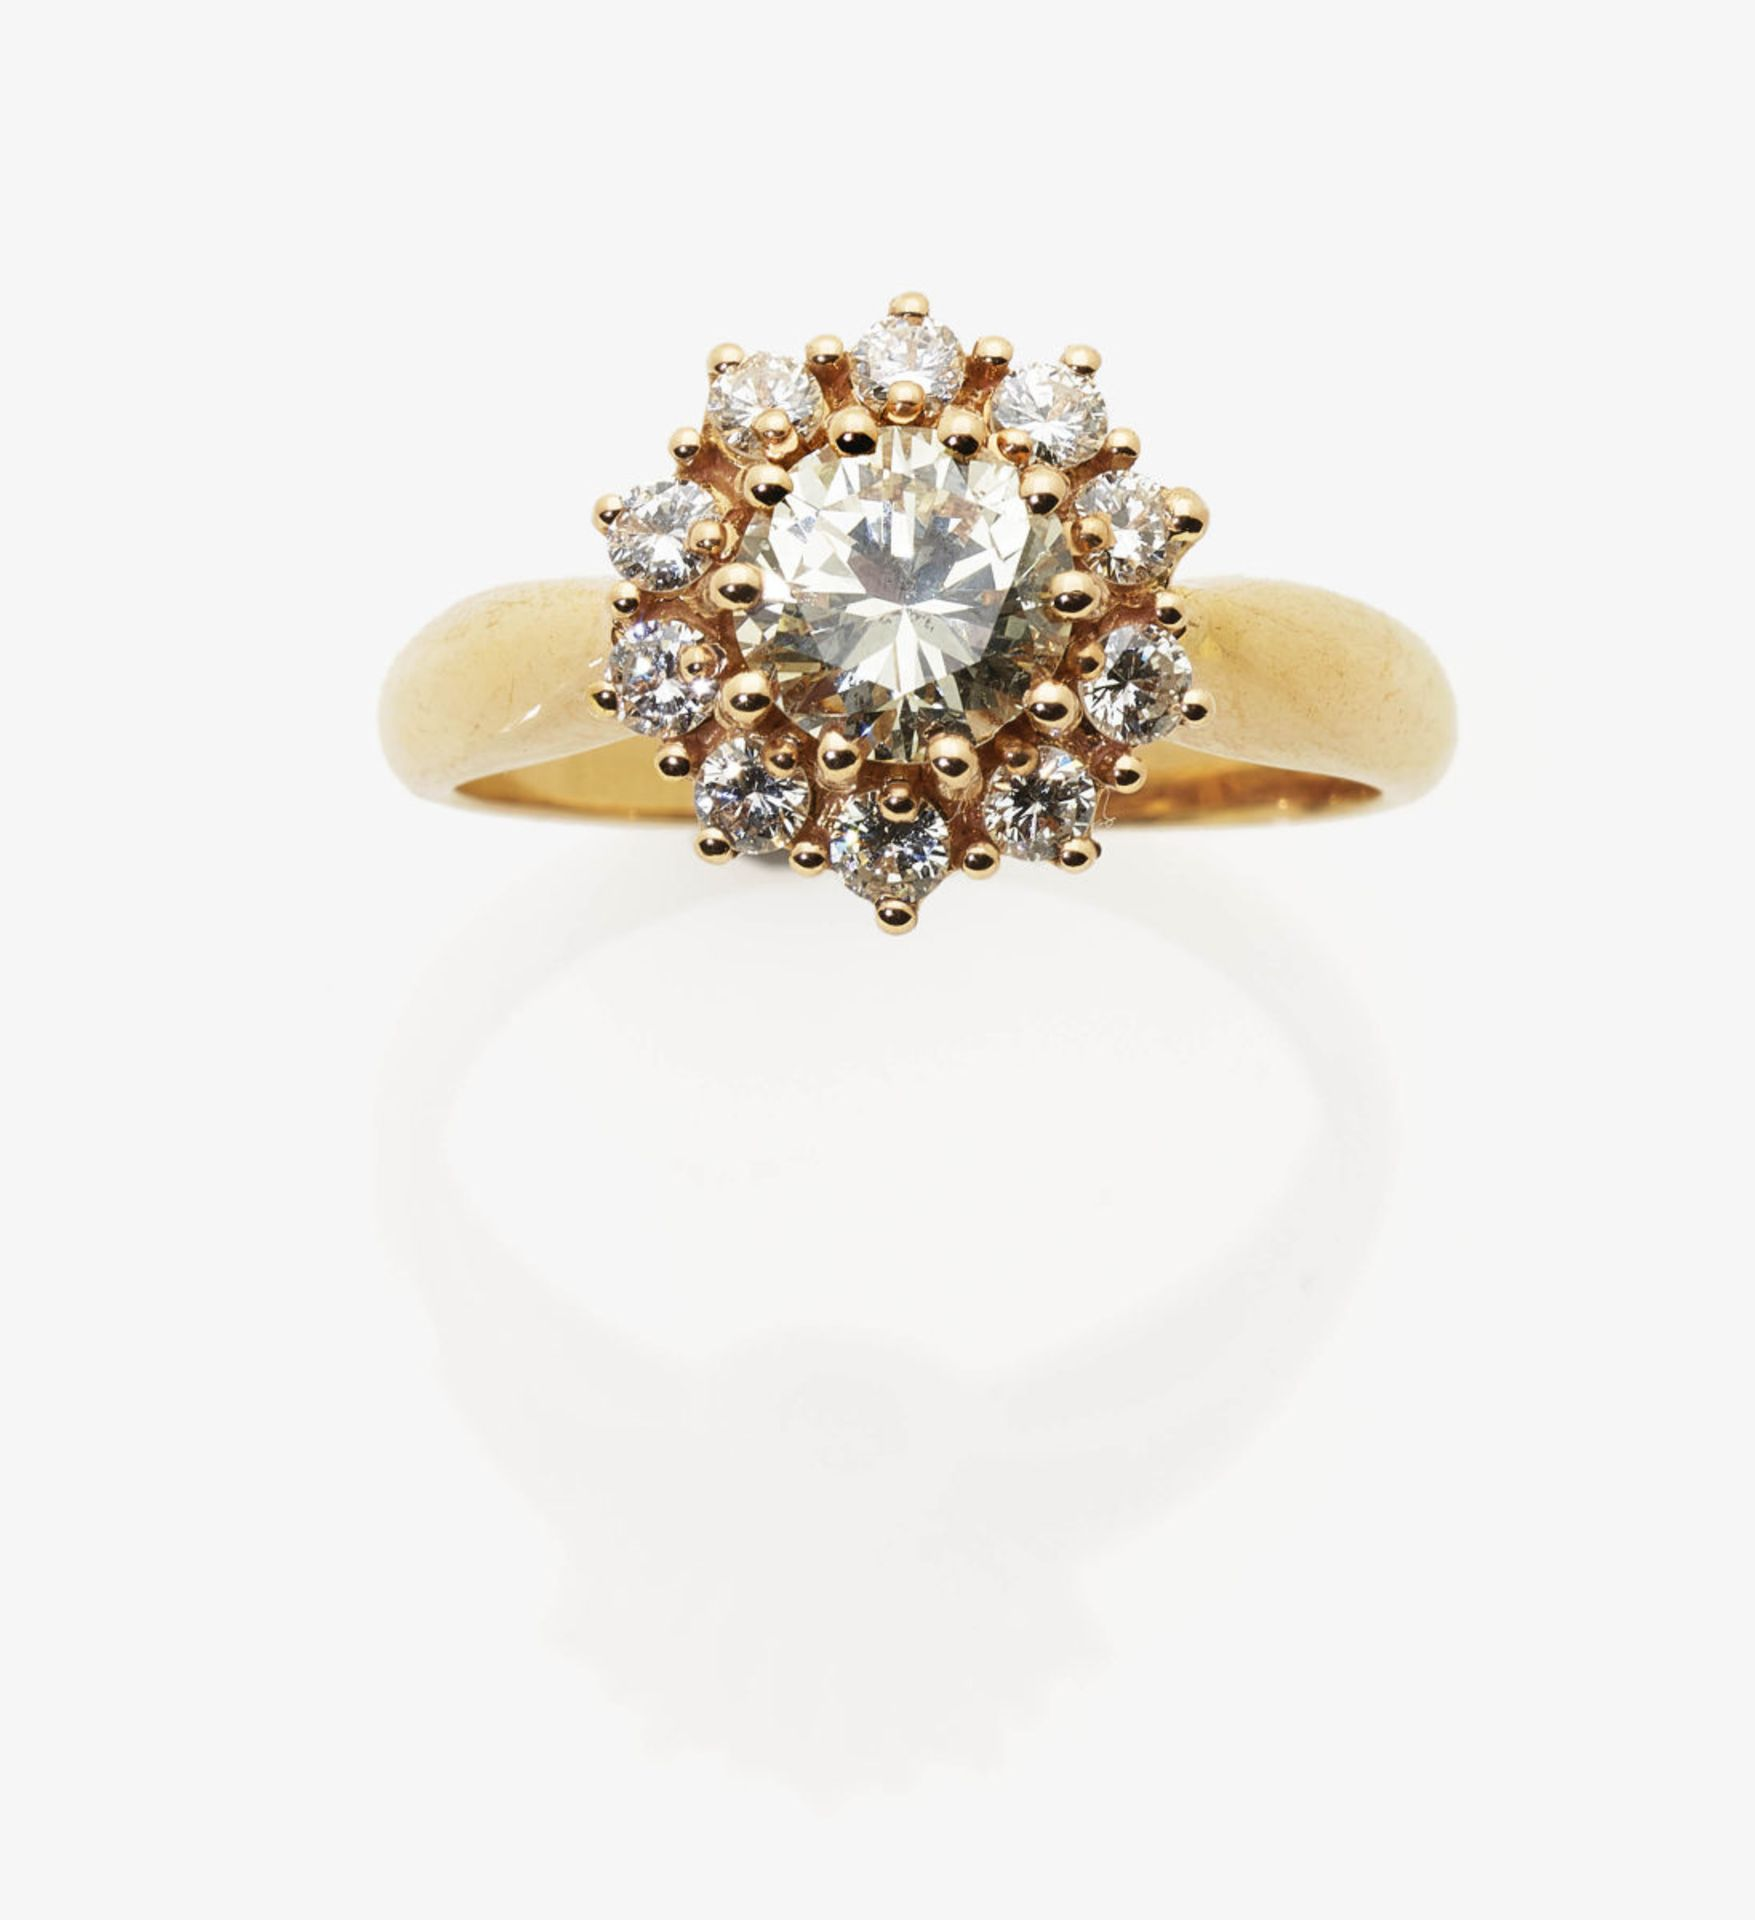 Los 1050 - A Diamond Cluster Ring